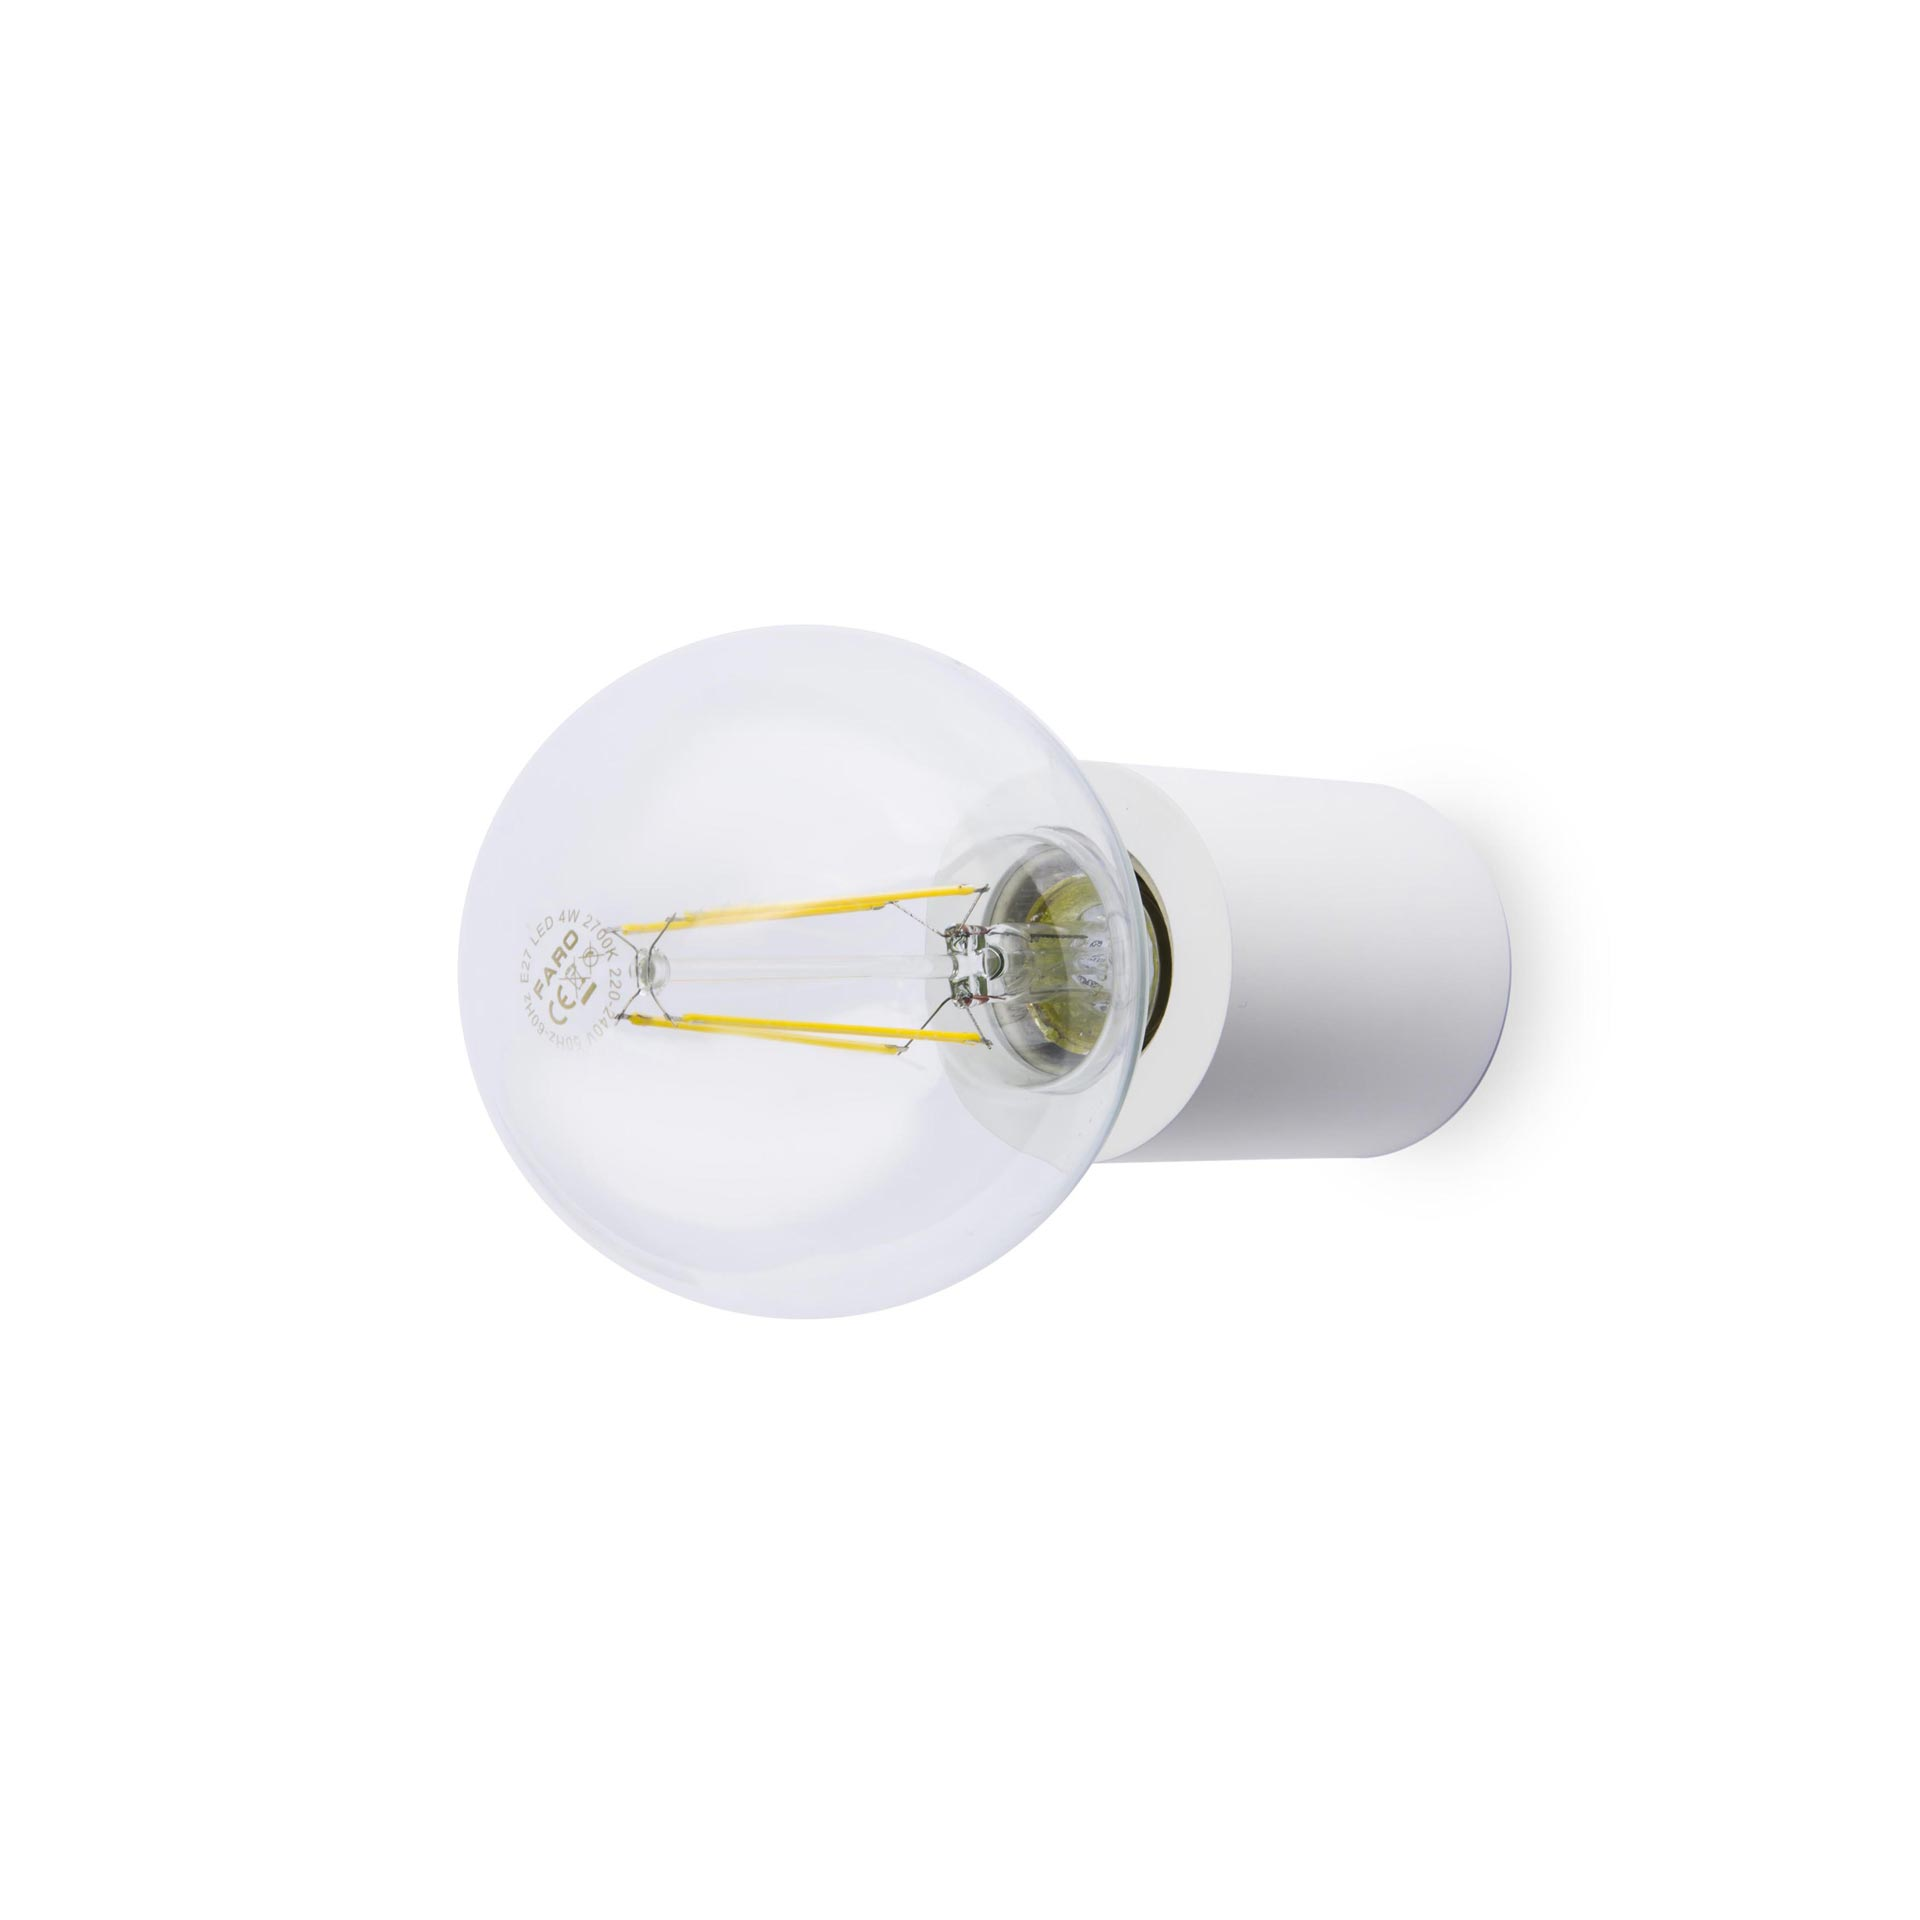 Aplique de pared E27 blanco mate Ten 62150 de Faro